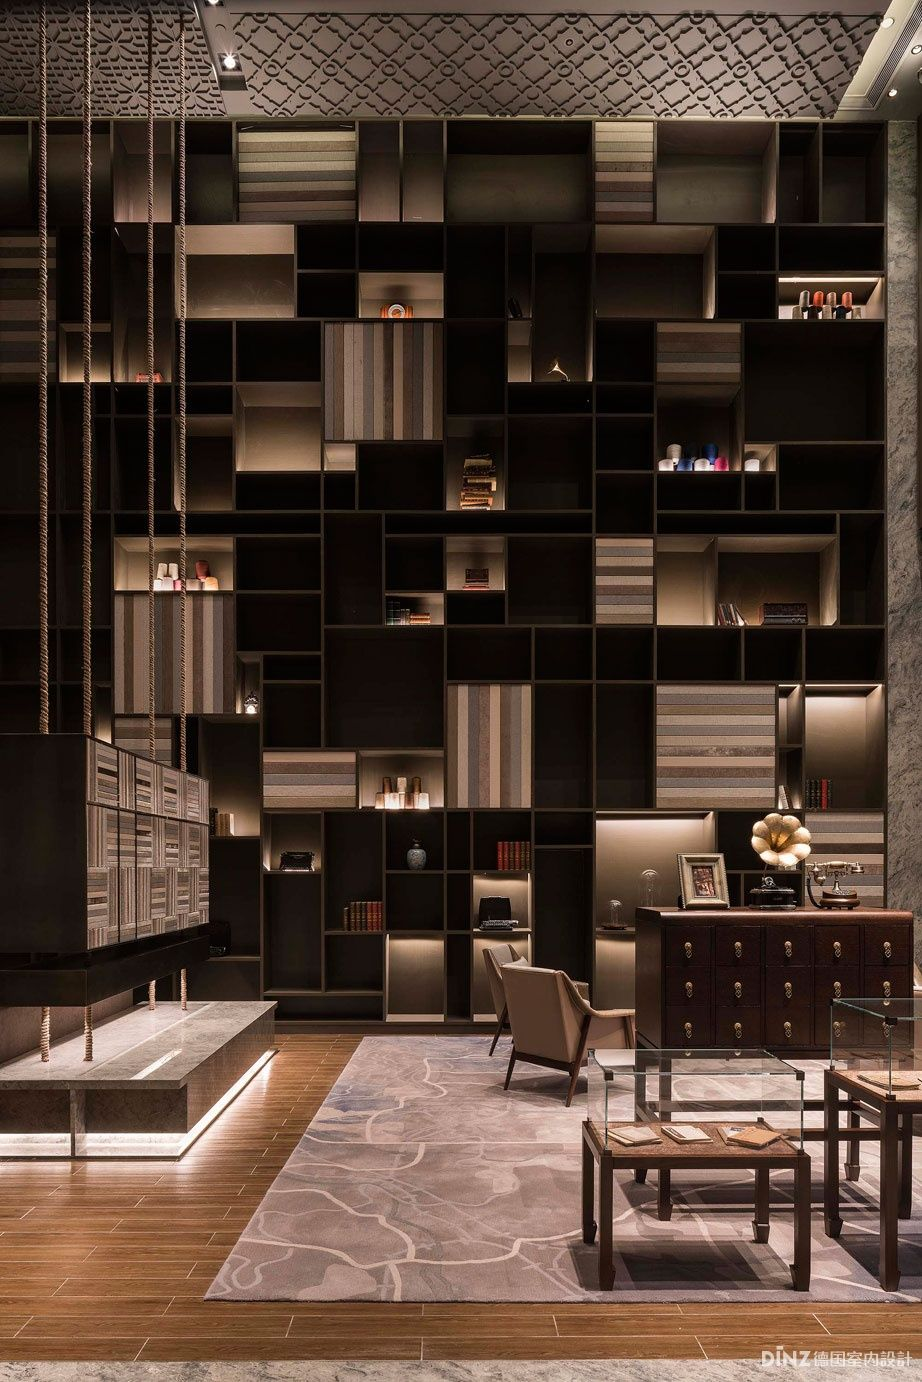 Hotel Lounge, Lobby Lounge, Shelving Design, Shelf Design, Lounge Lighting,  Wall